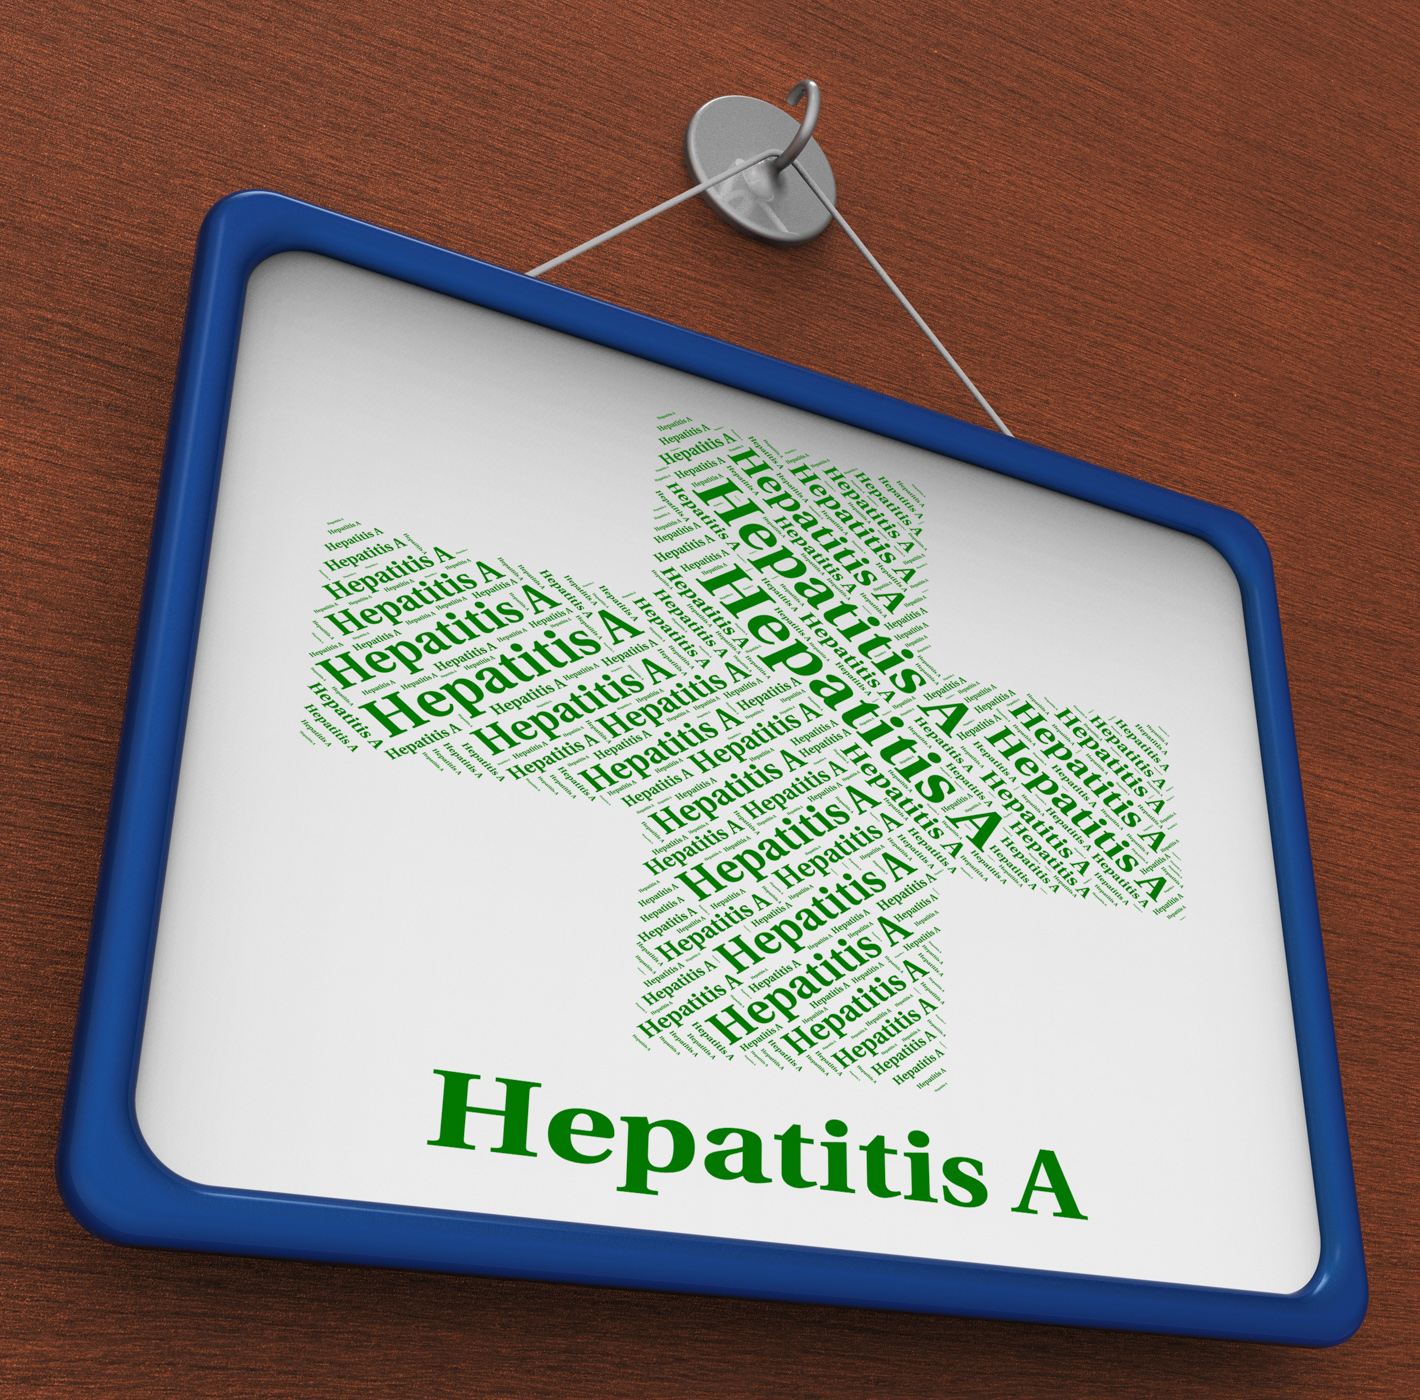 Hepatitis a shows ill health and affliction photo